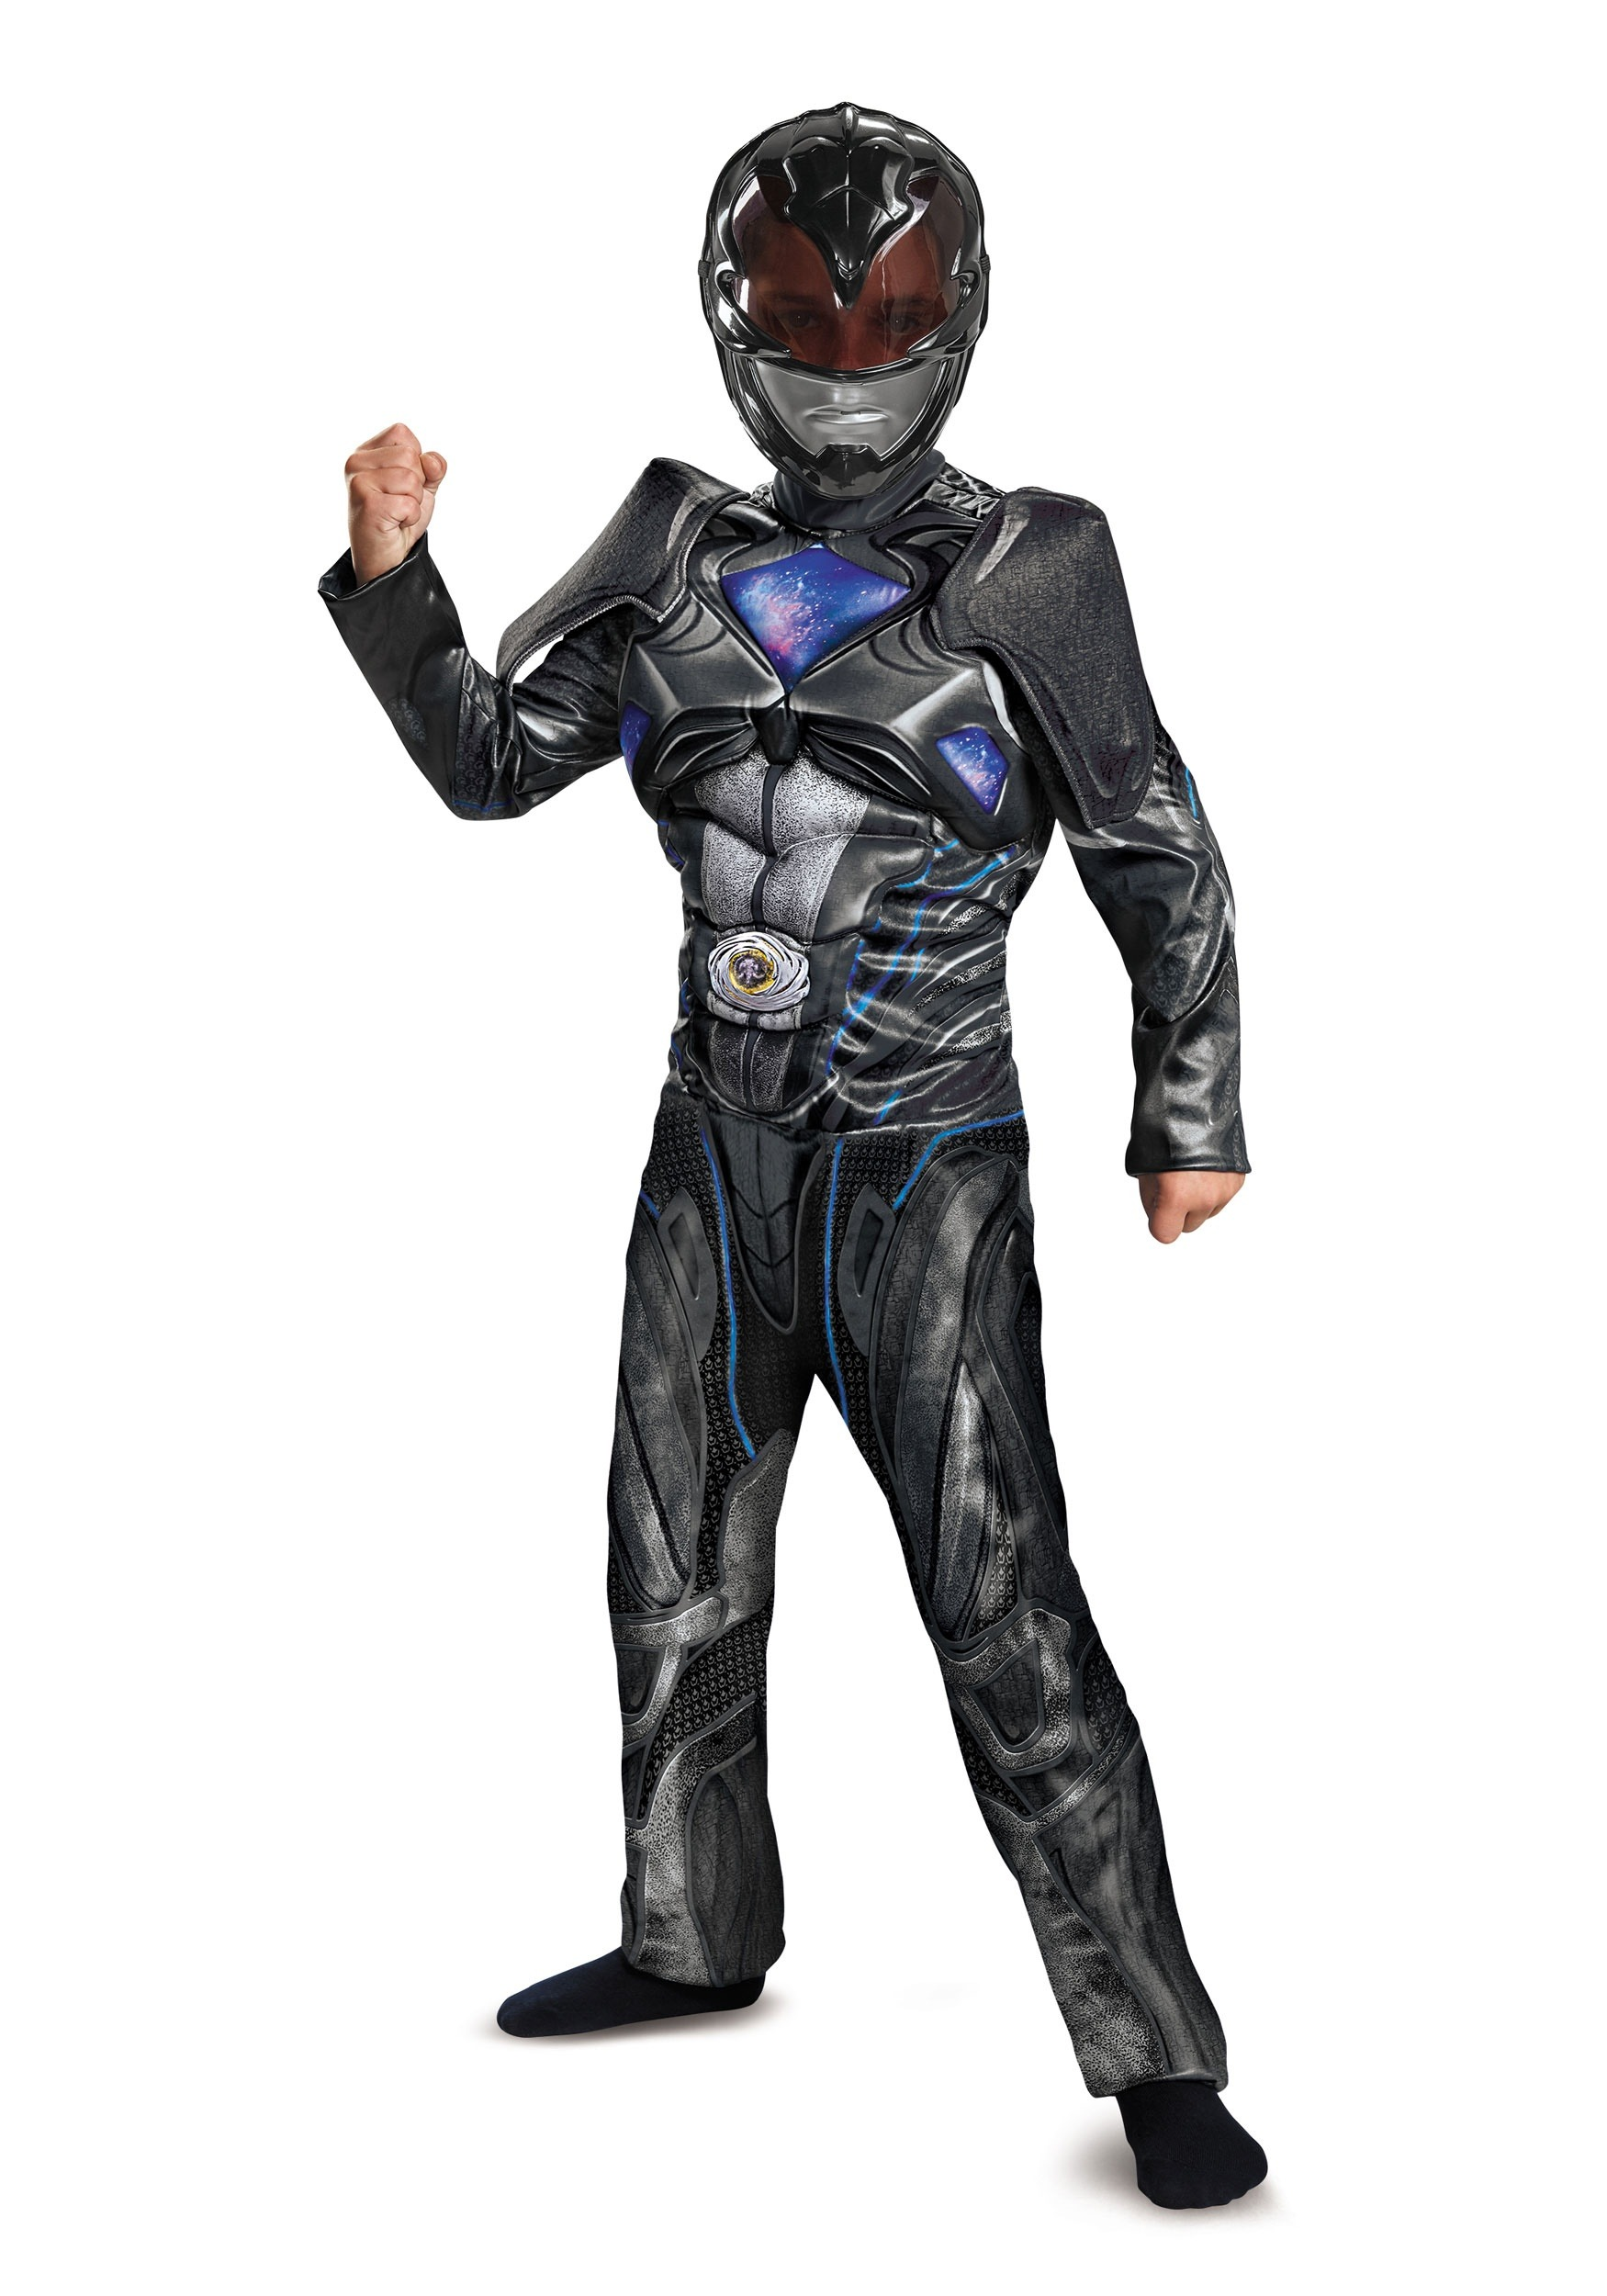 Black Ranger Child Movie Deluxe Costume  sc 1 st  Fun.com & Black Ranger Movie Deluxe Child Costume